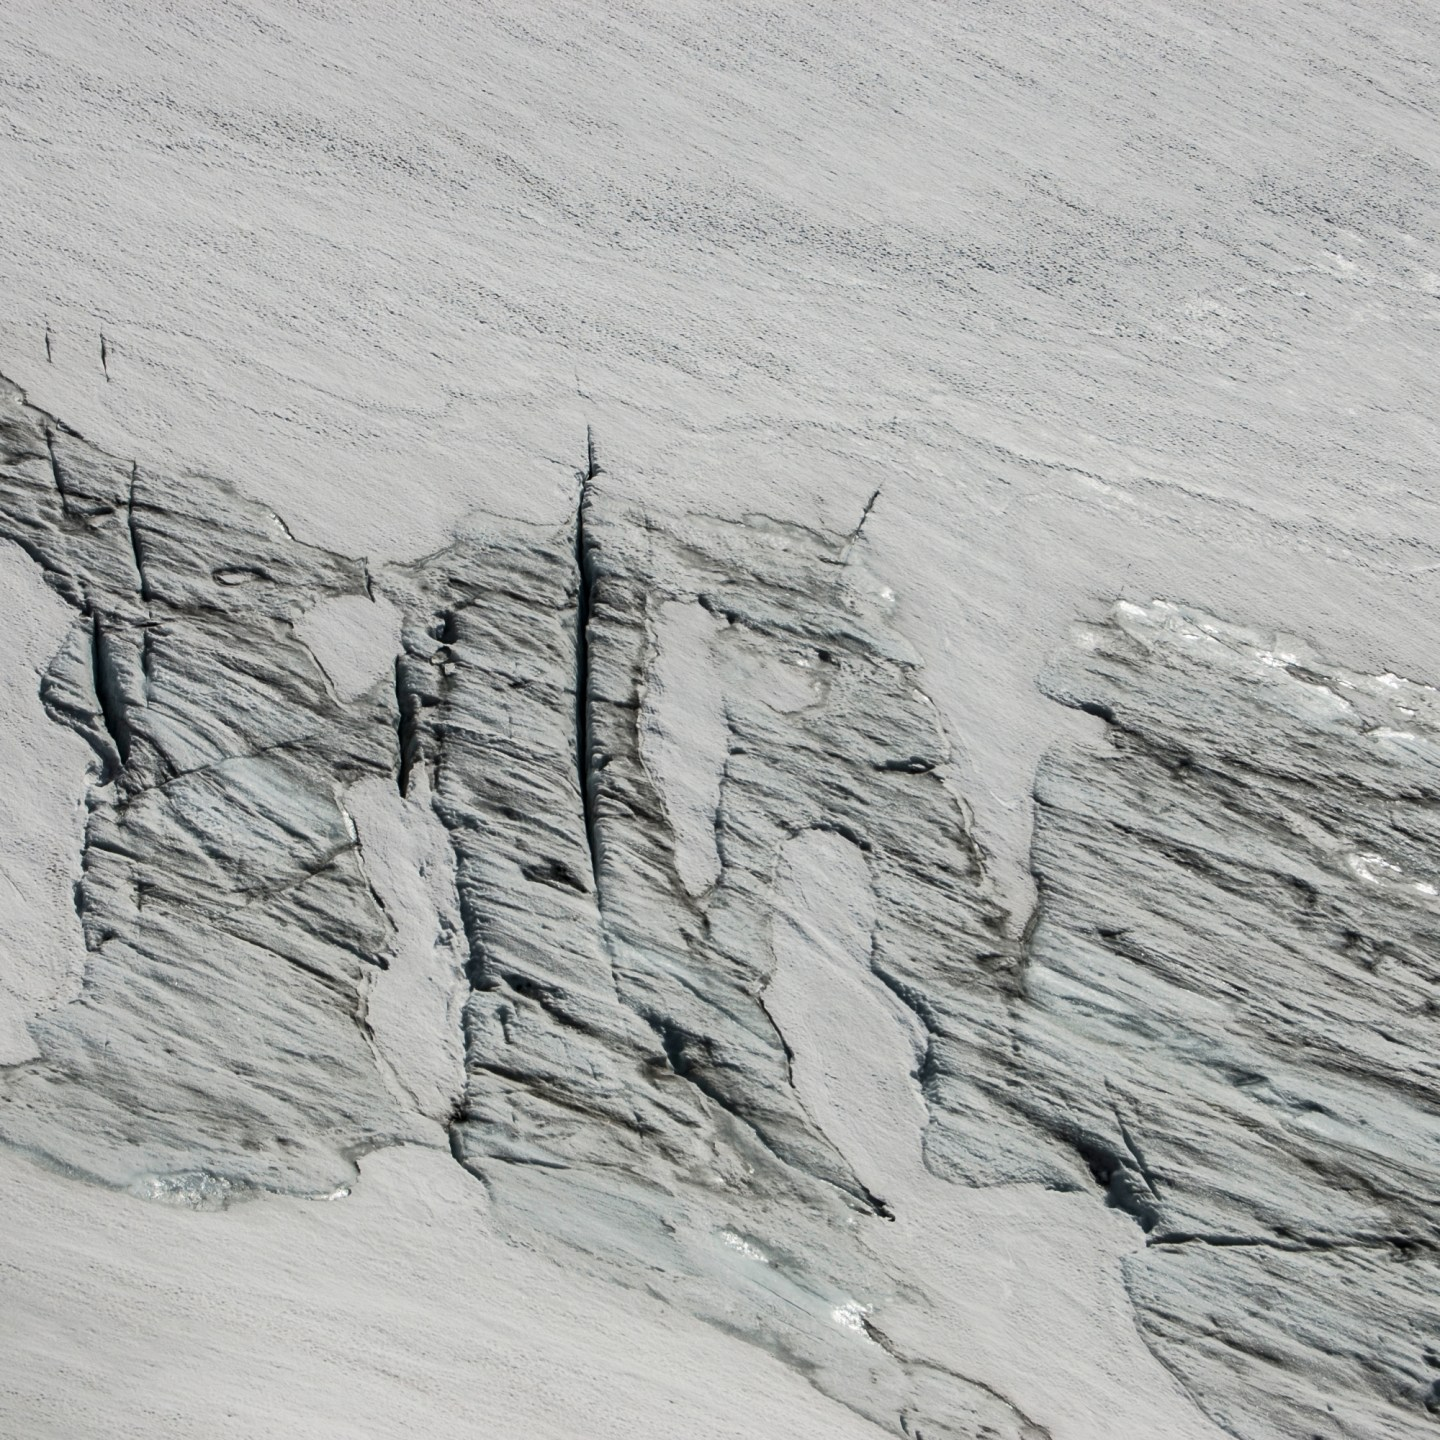 Glacial Forms of Erosion | Svartisen og Engebreen in Helgeland, Norway 2016 | Foto: Marc Ihle